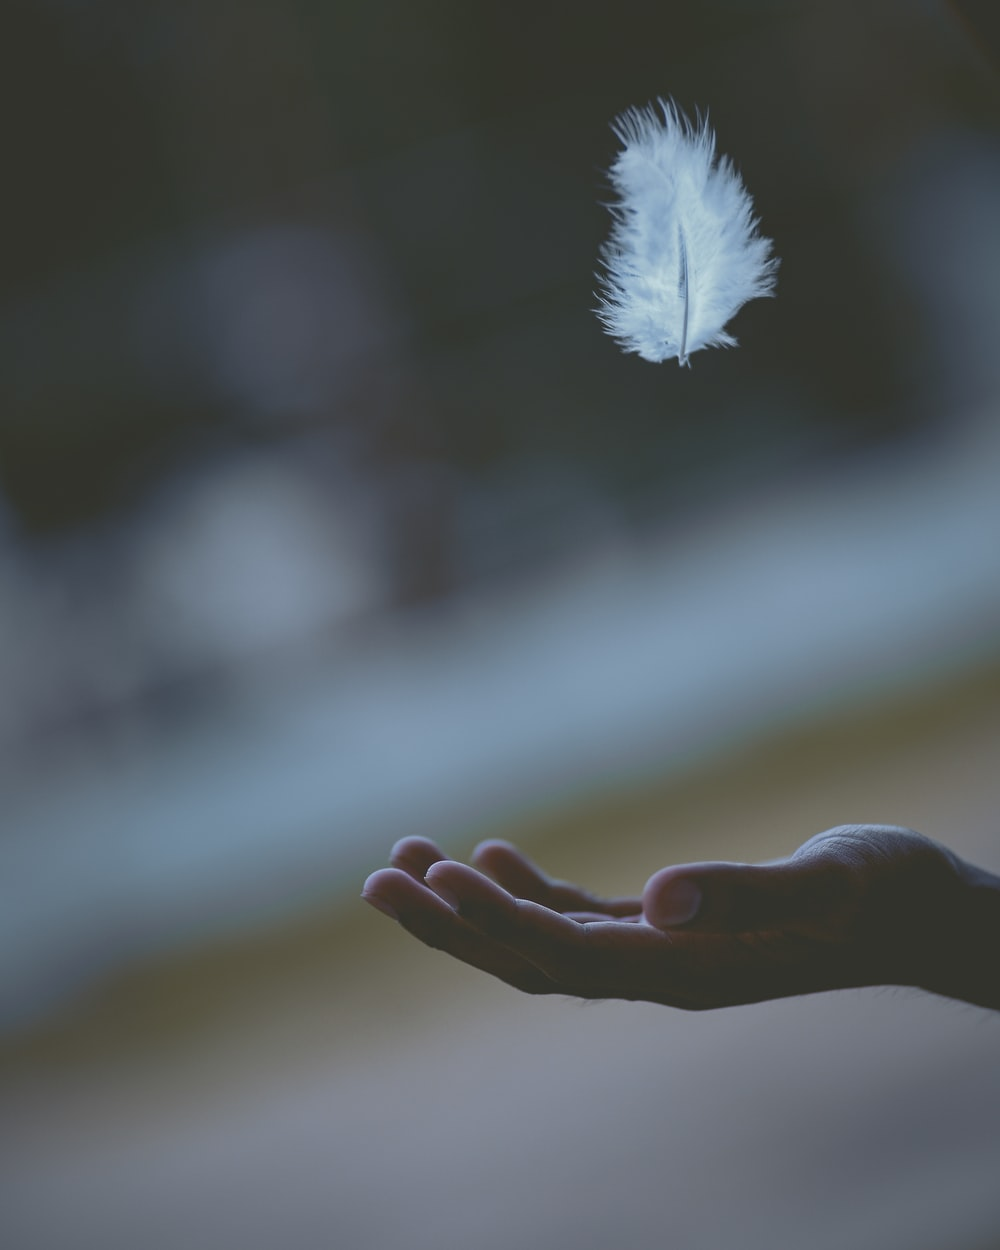 shallow focus photography of white feather dropping in person's hand